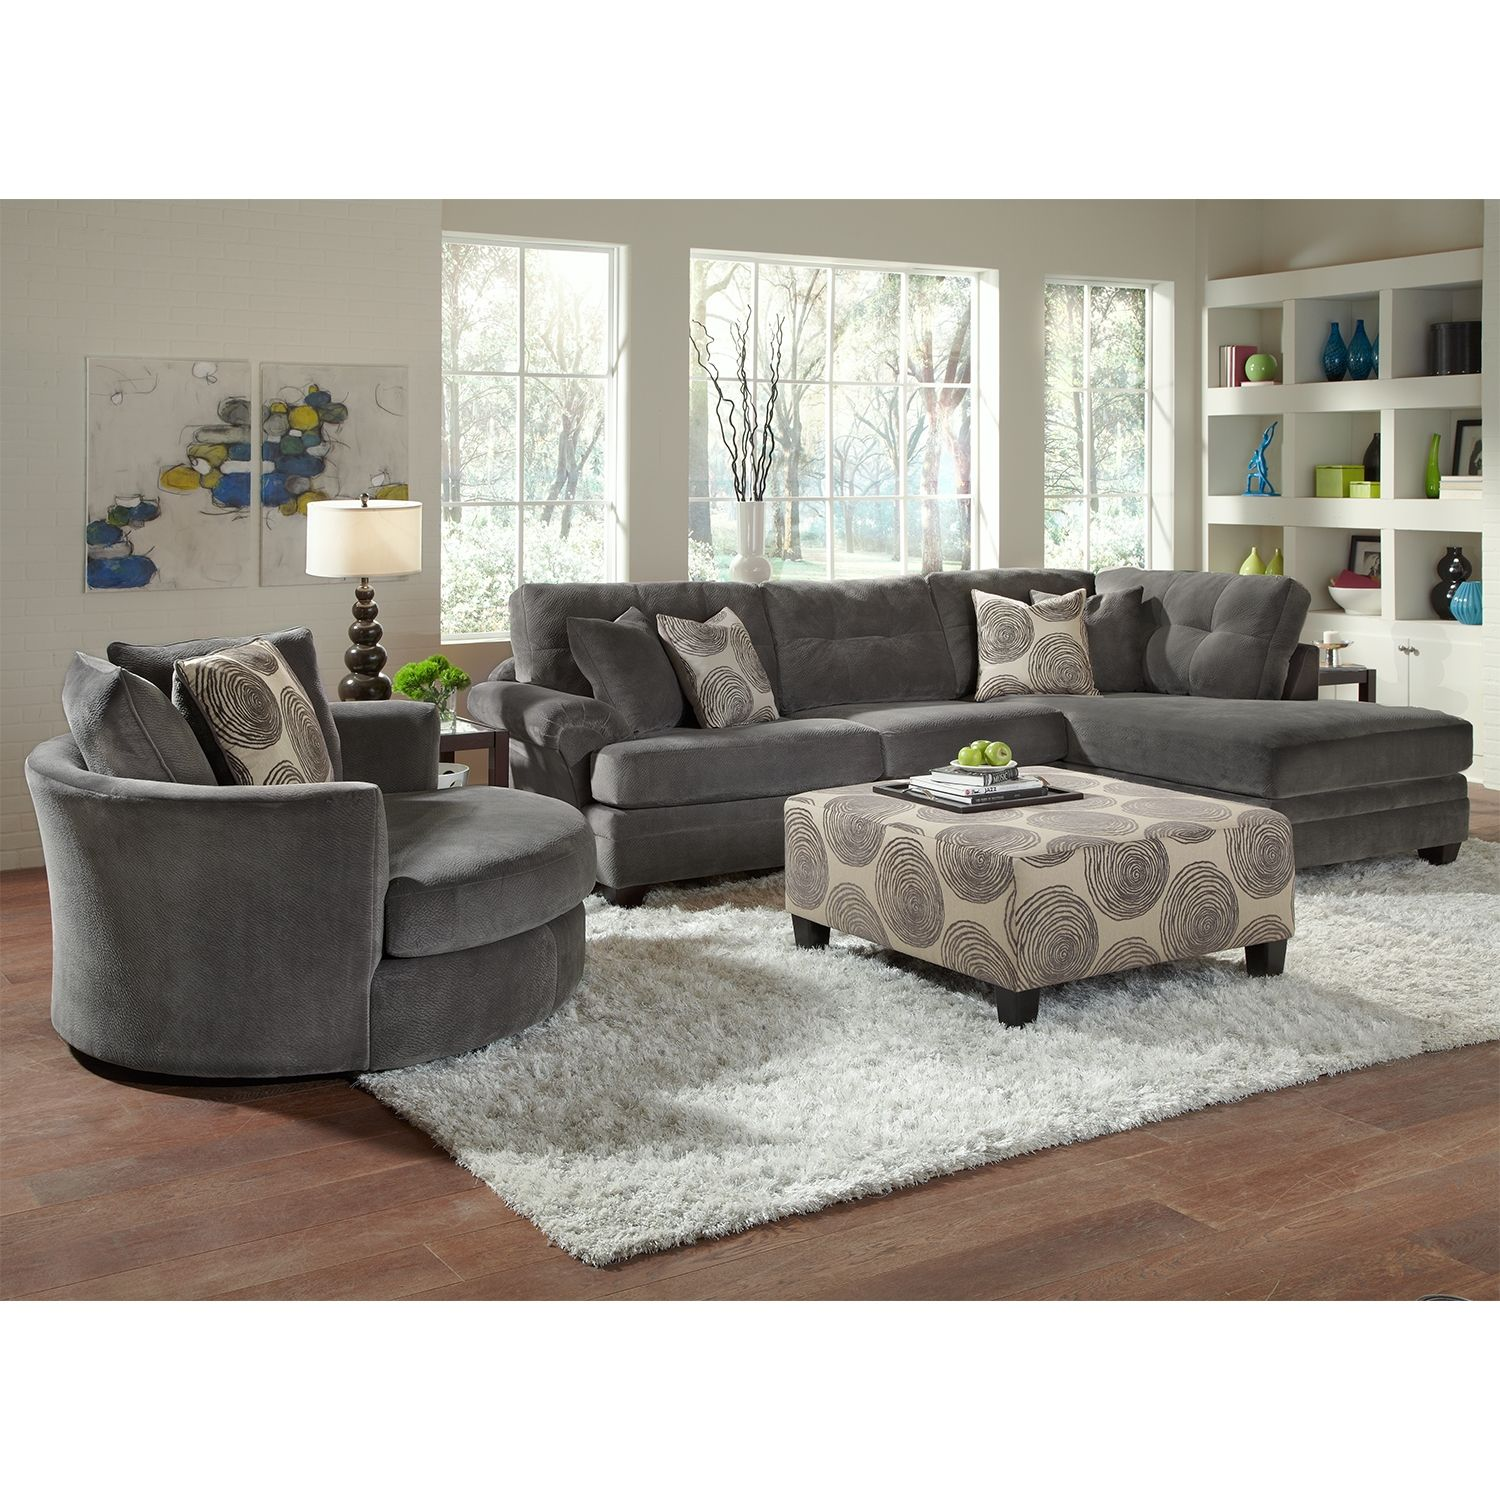 American Signature Furniture   Cordoba Upholstery Collection  love the  round chair. Catalina Gray Upholstery 2 Pc  Sectional   Furniture com   Home